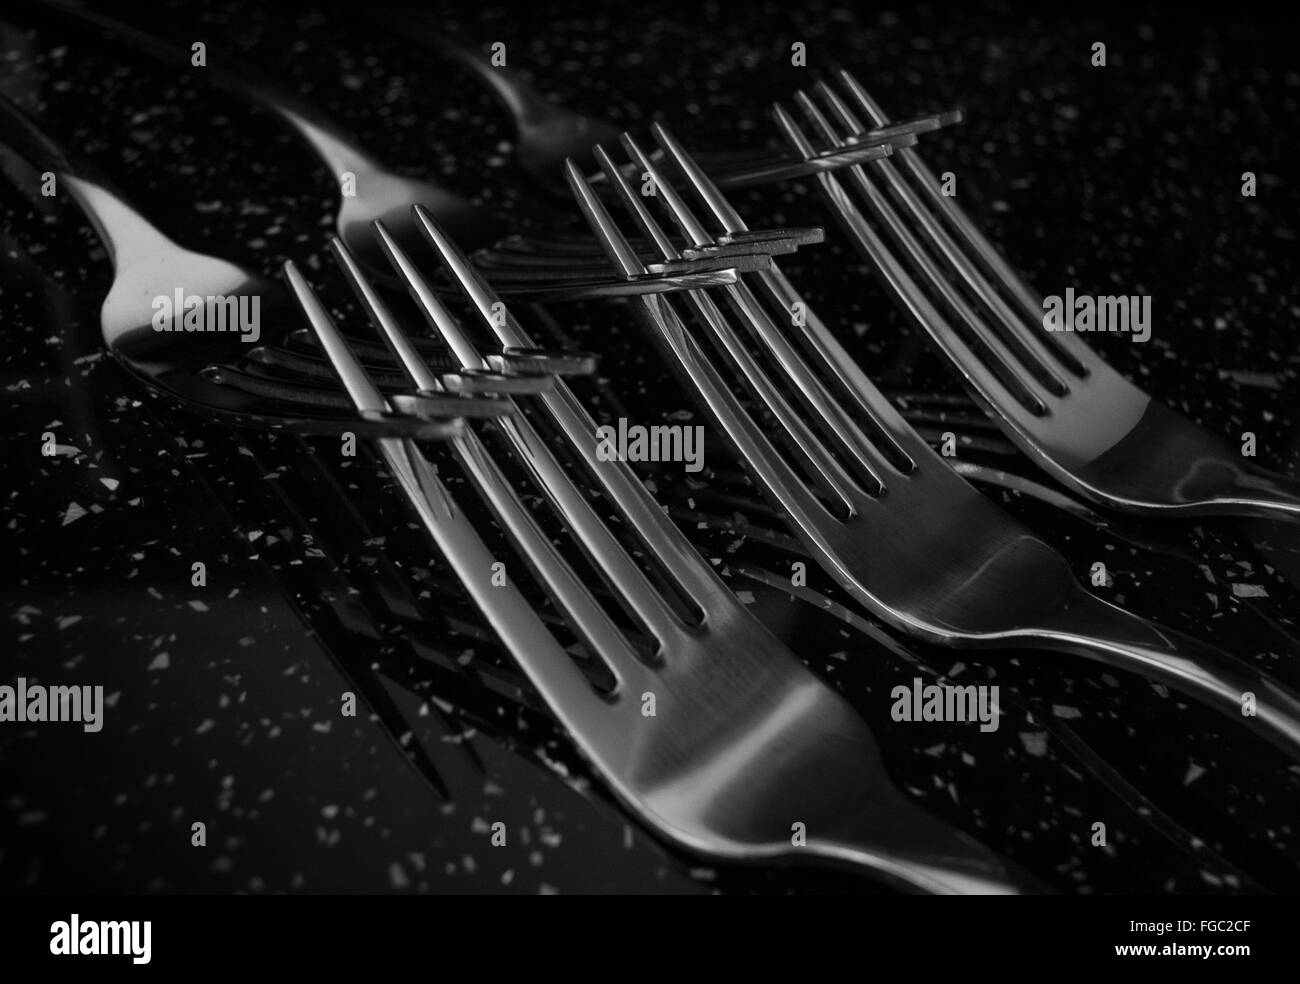 Close-Up Of Crossing Forks On Table - Stock Image